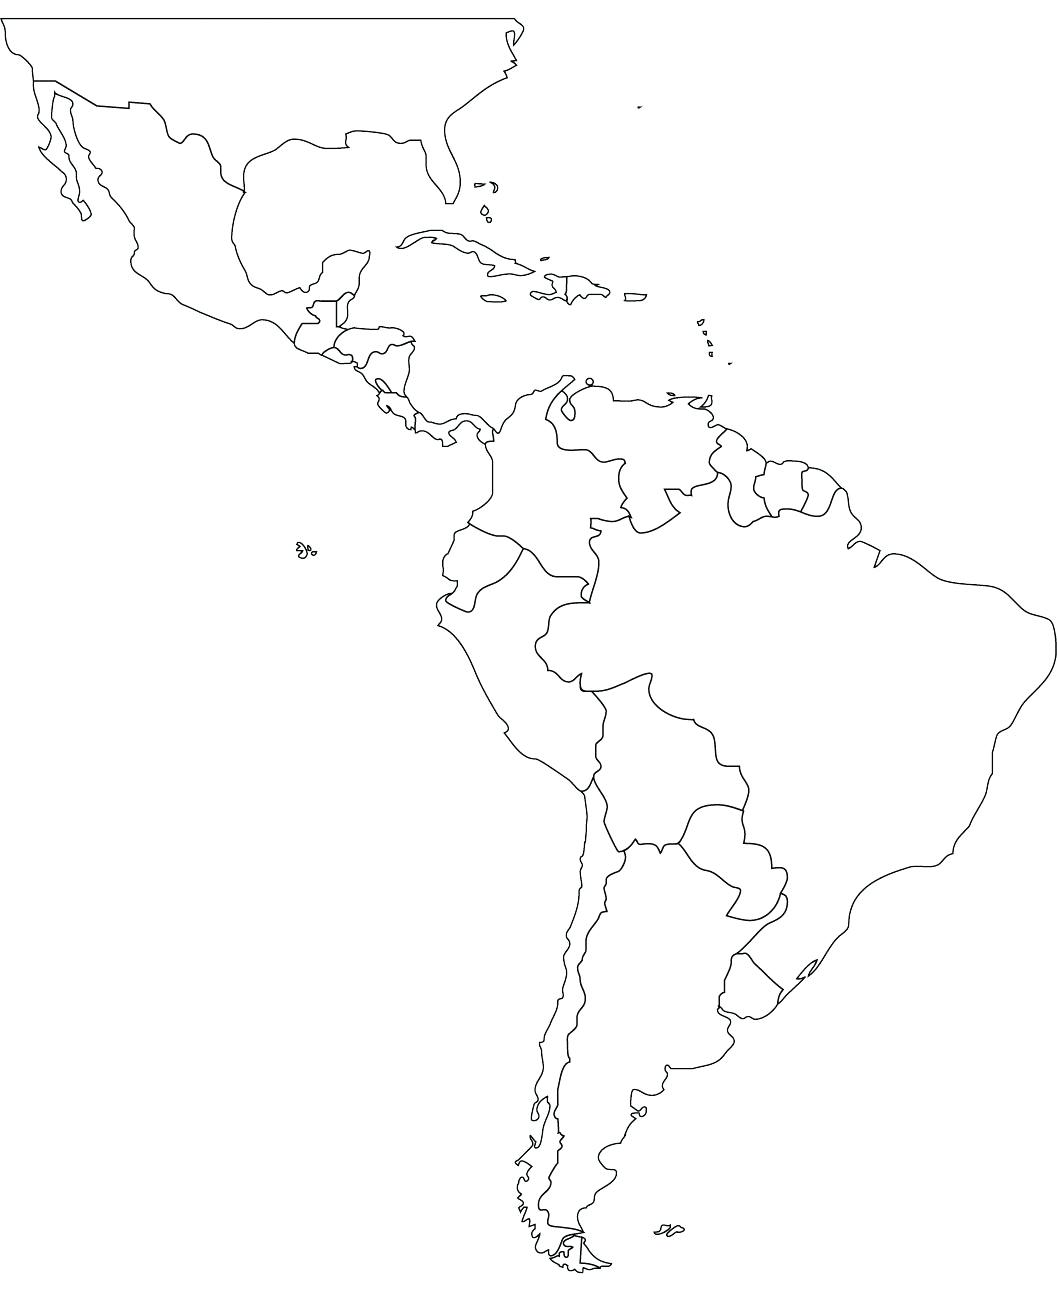 Usa Drawing Map at GetDrawings.com | Free for personal use Usa ...